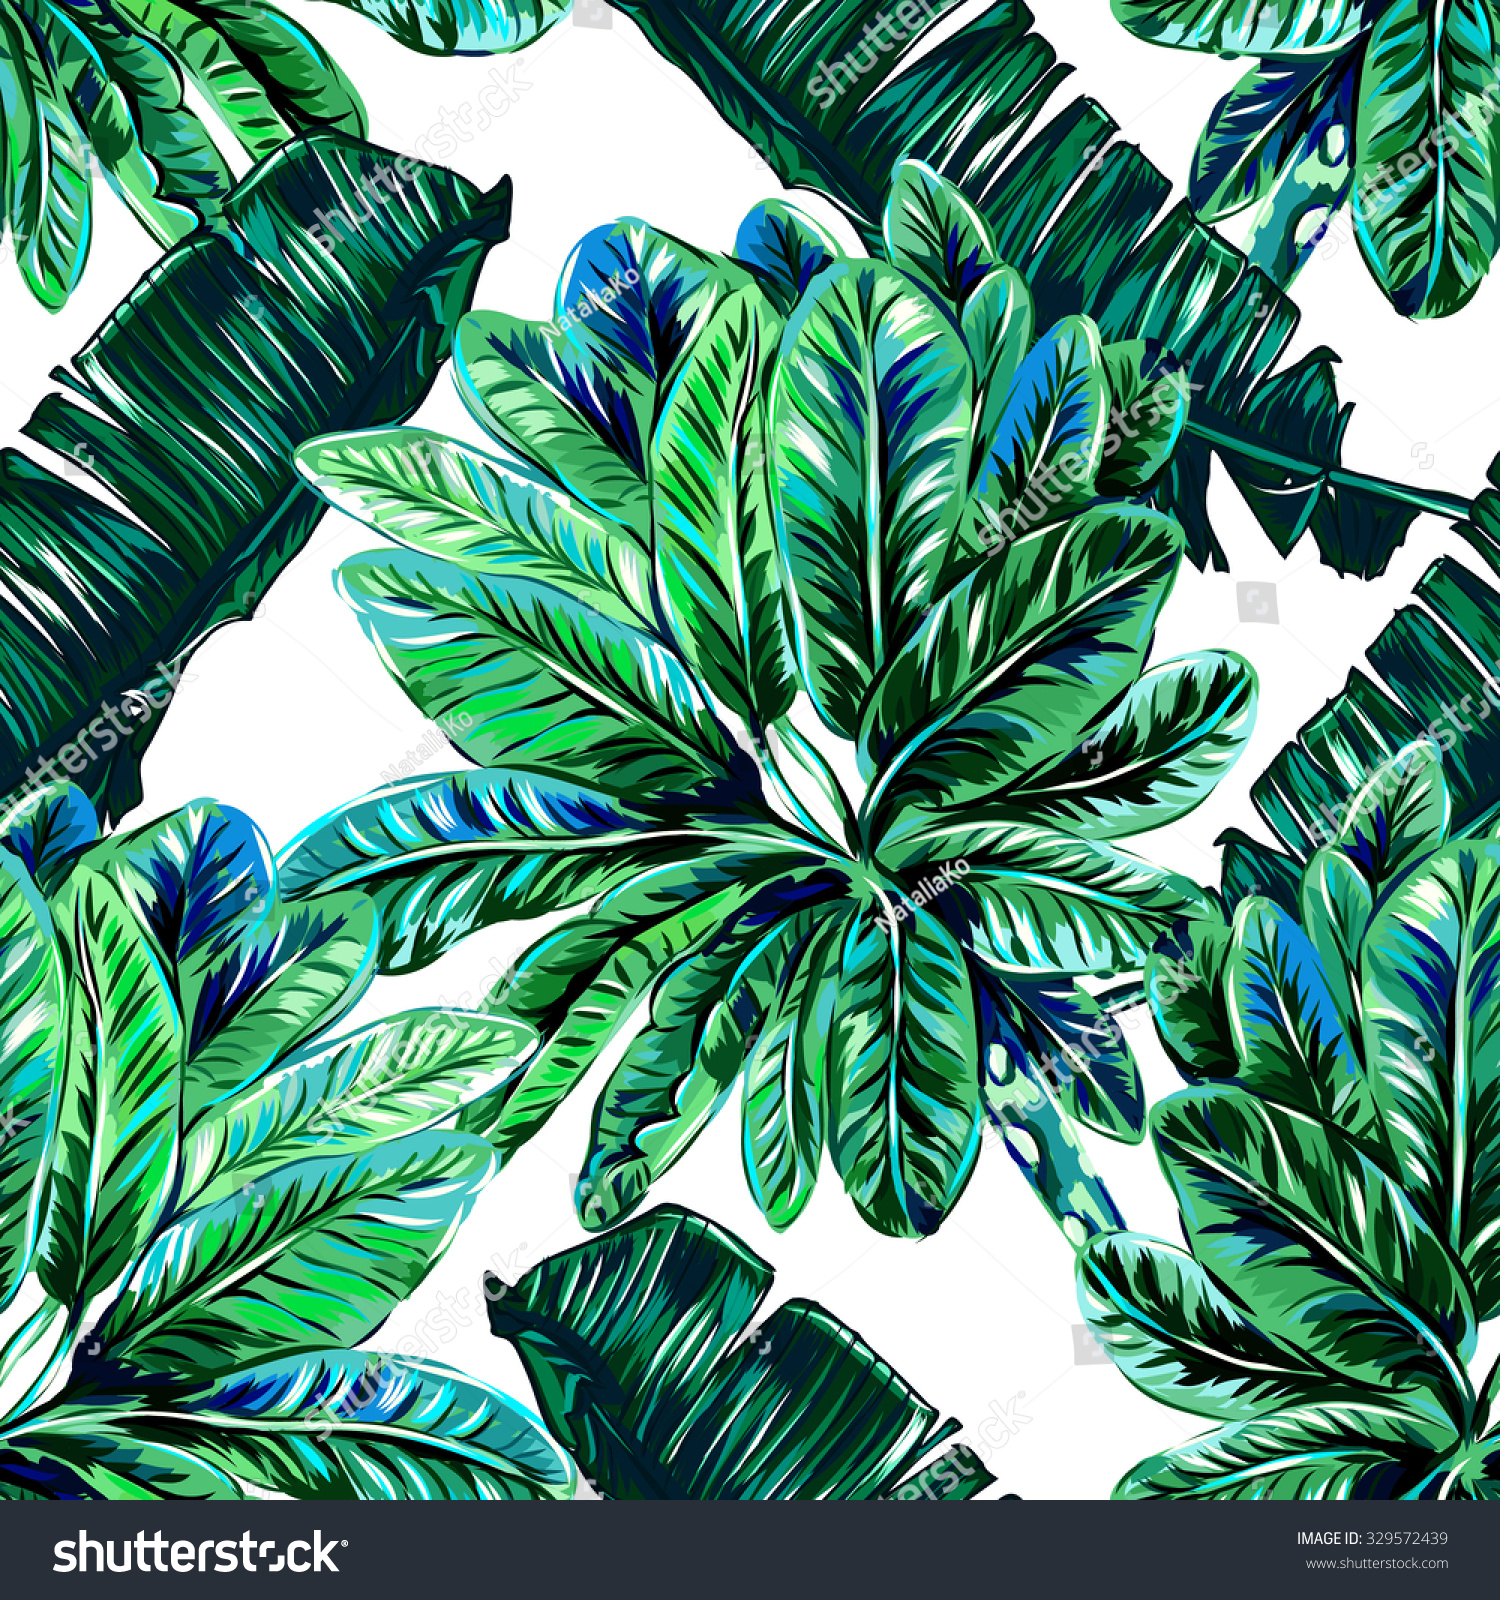 Image Result For Royalty Free Music Download Jungle Vibe